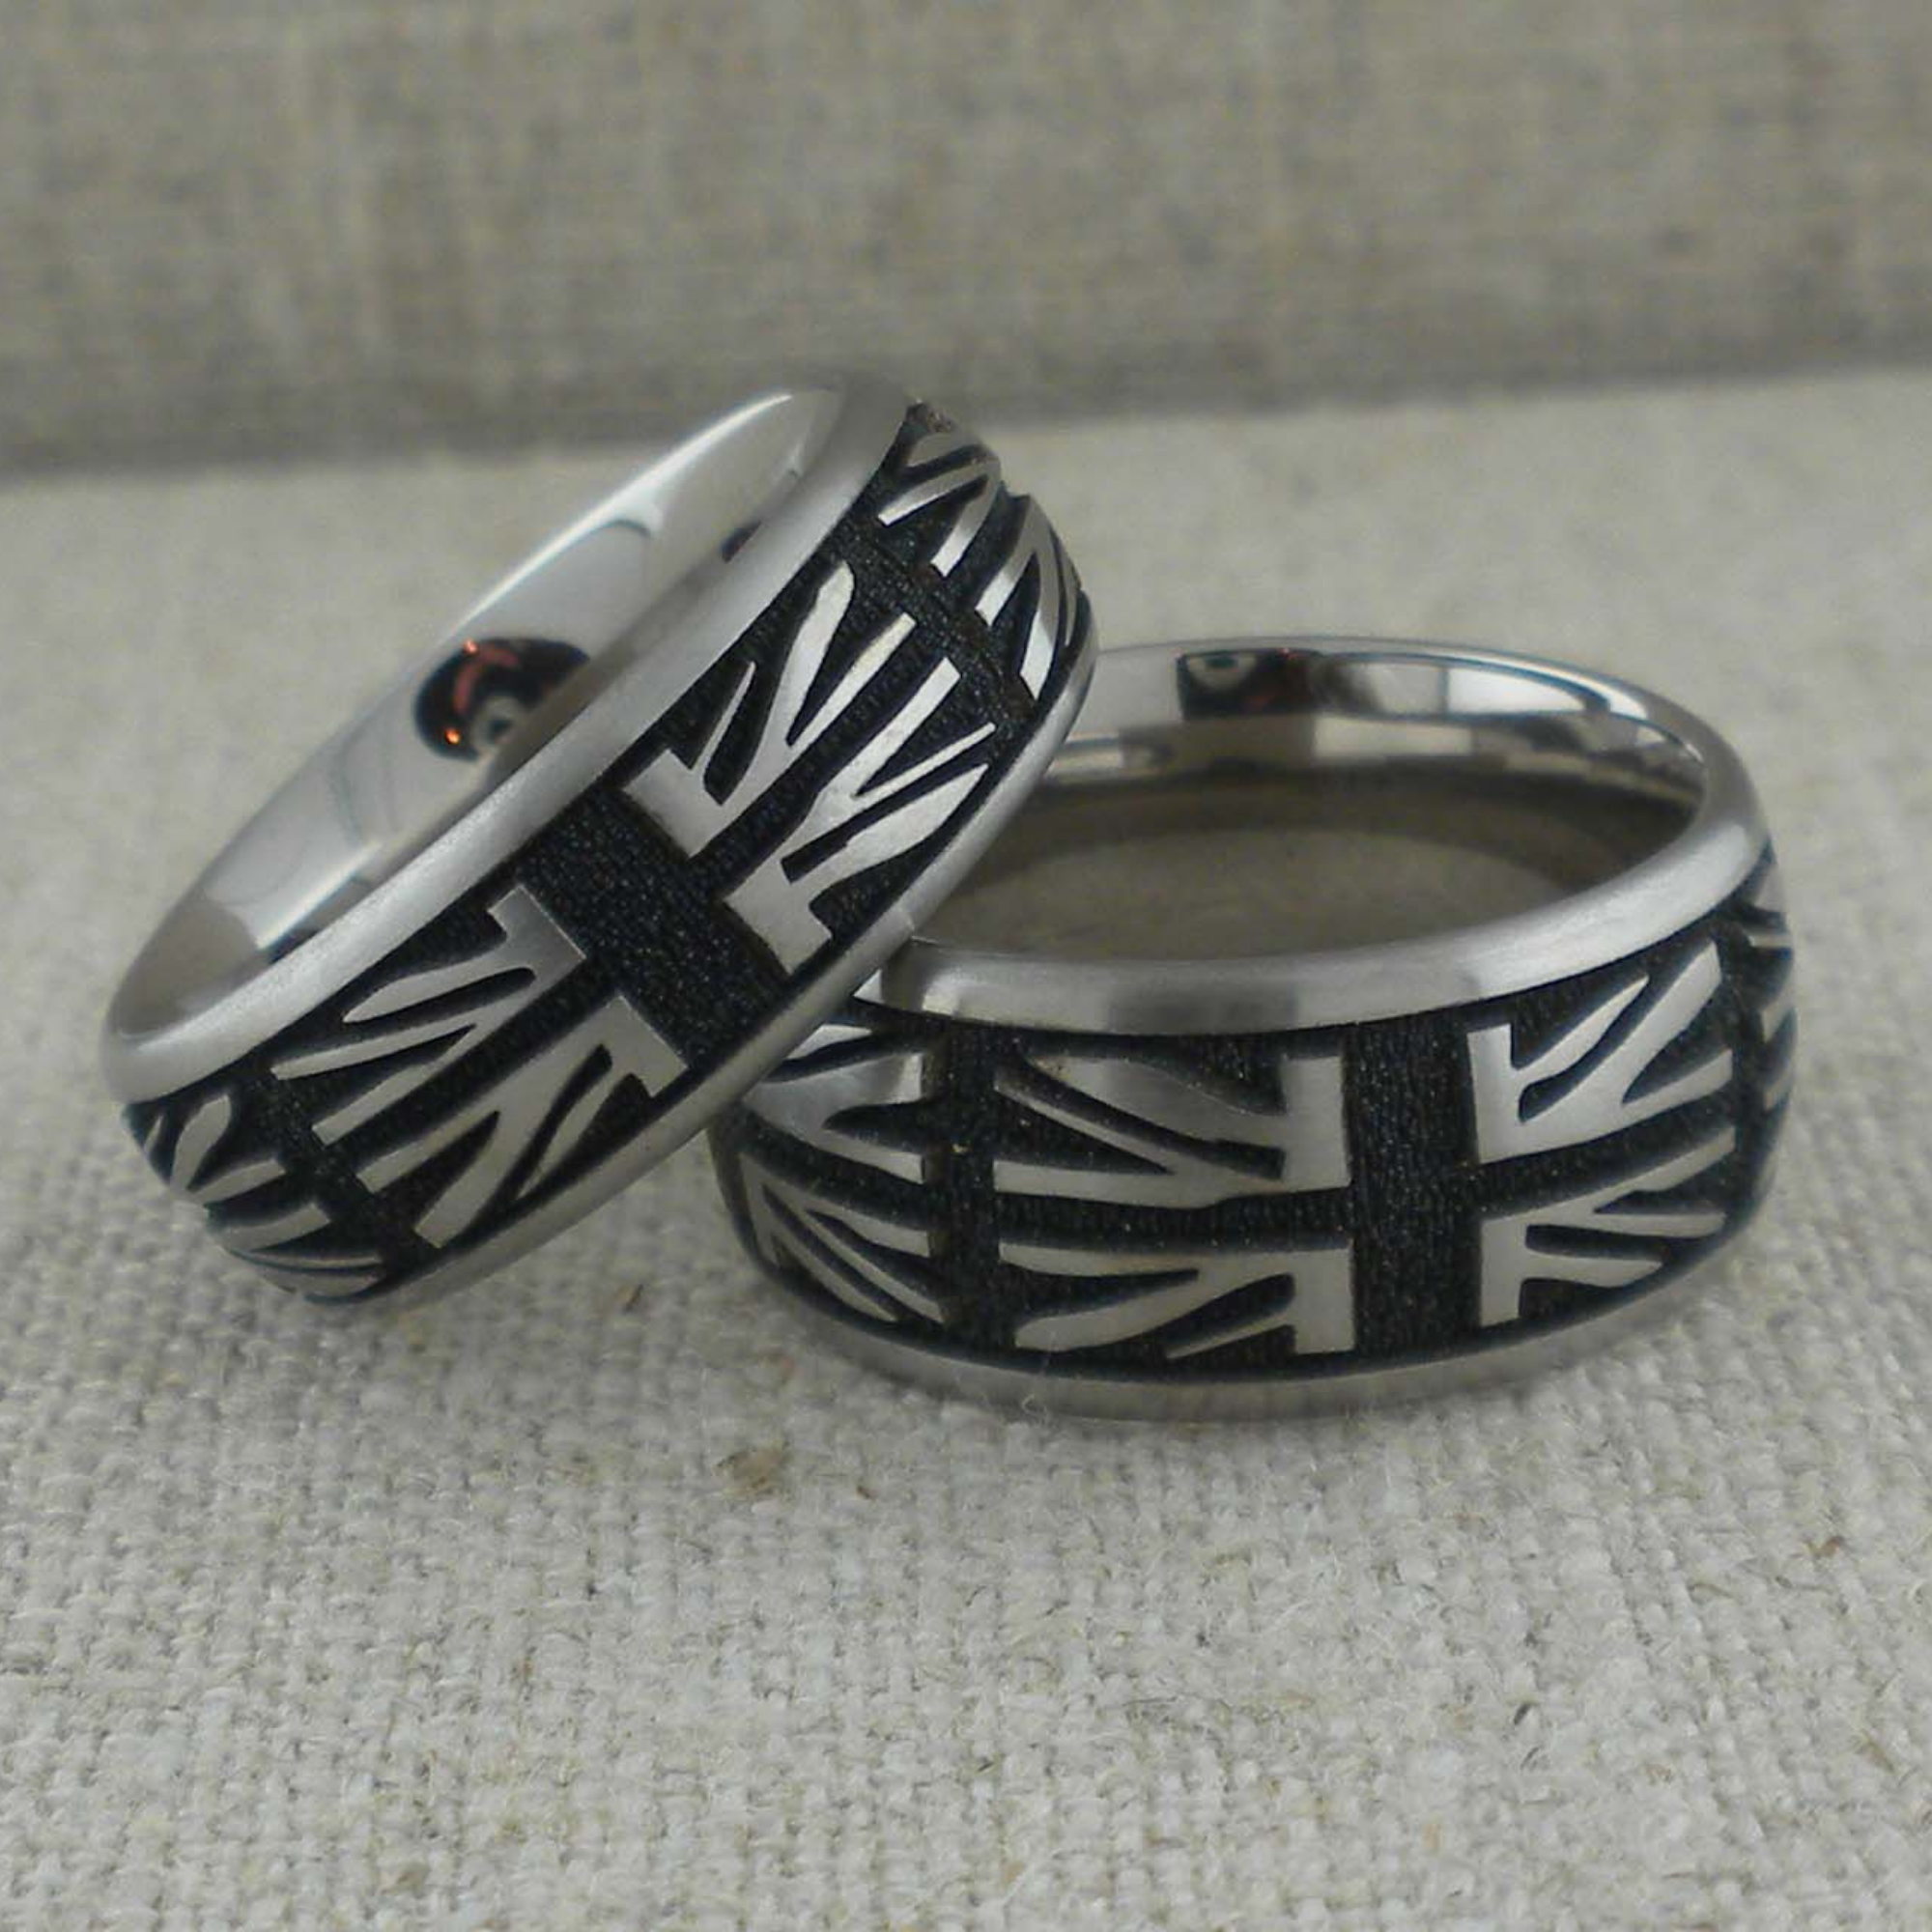 7 mm and 8 mm Union Jack Wedding Ring